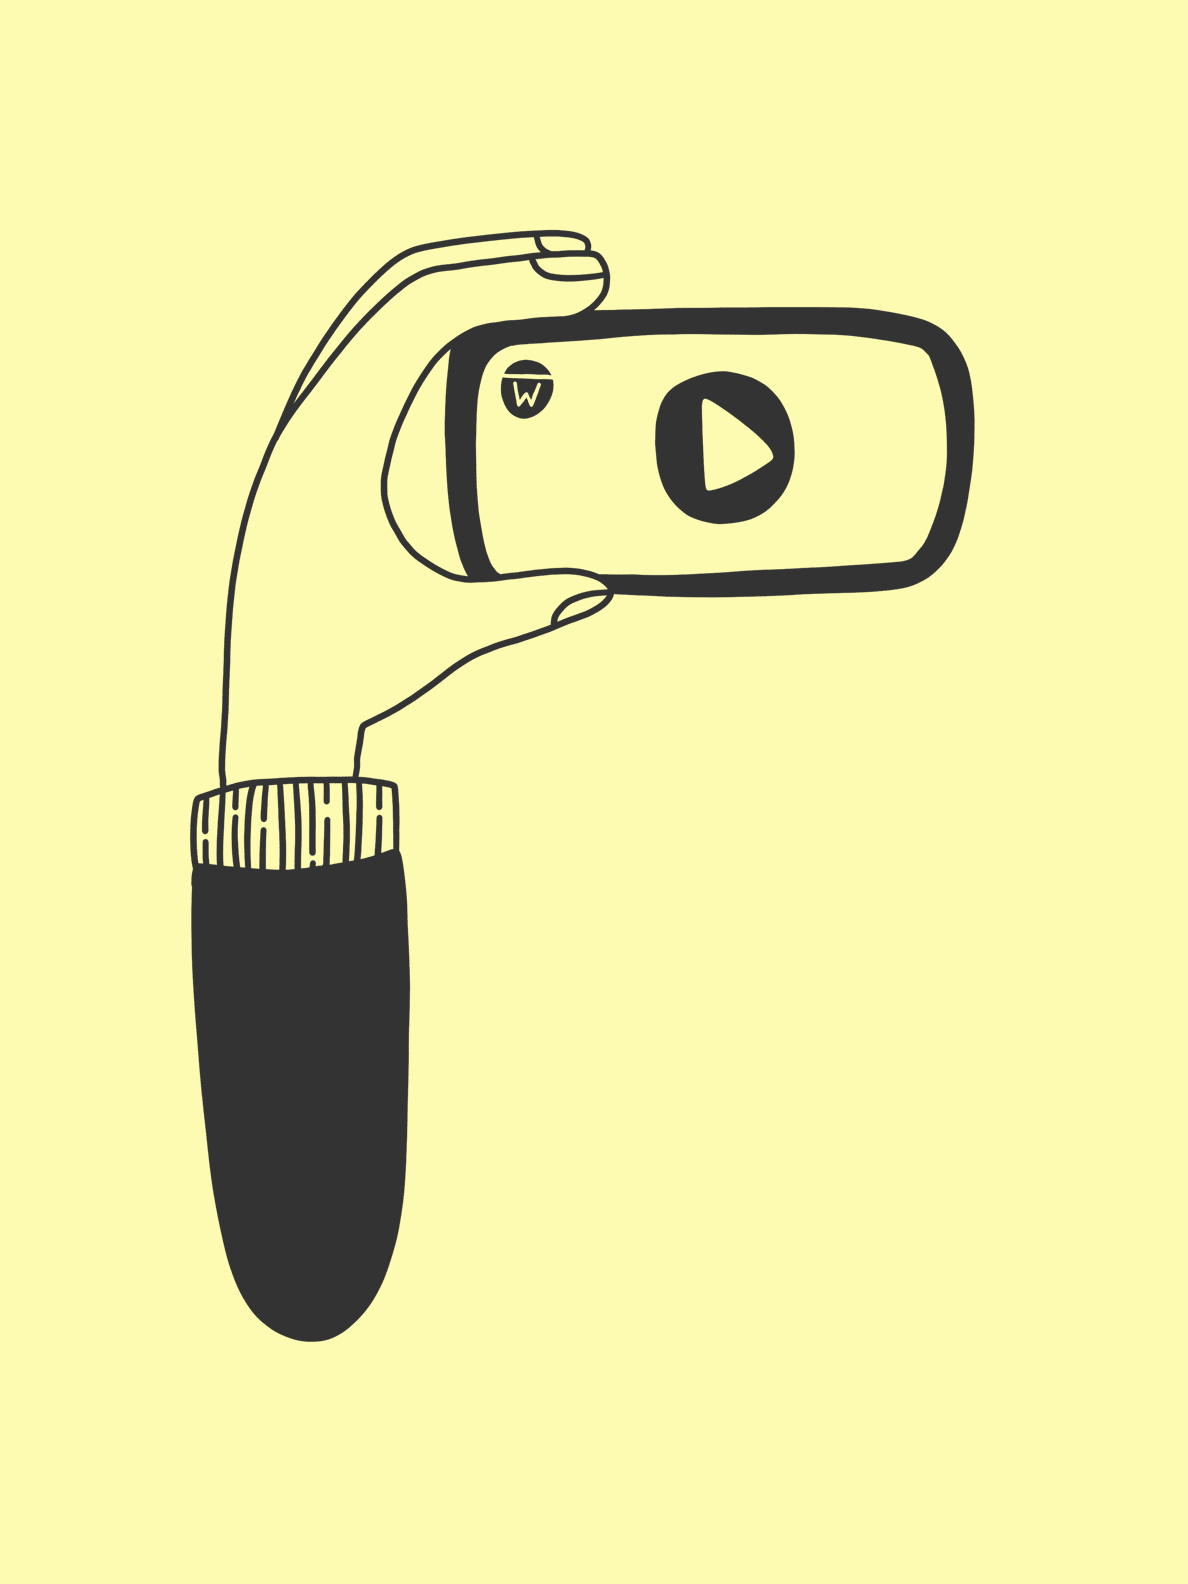 A hand holding a phone